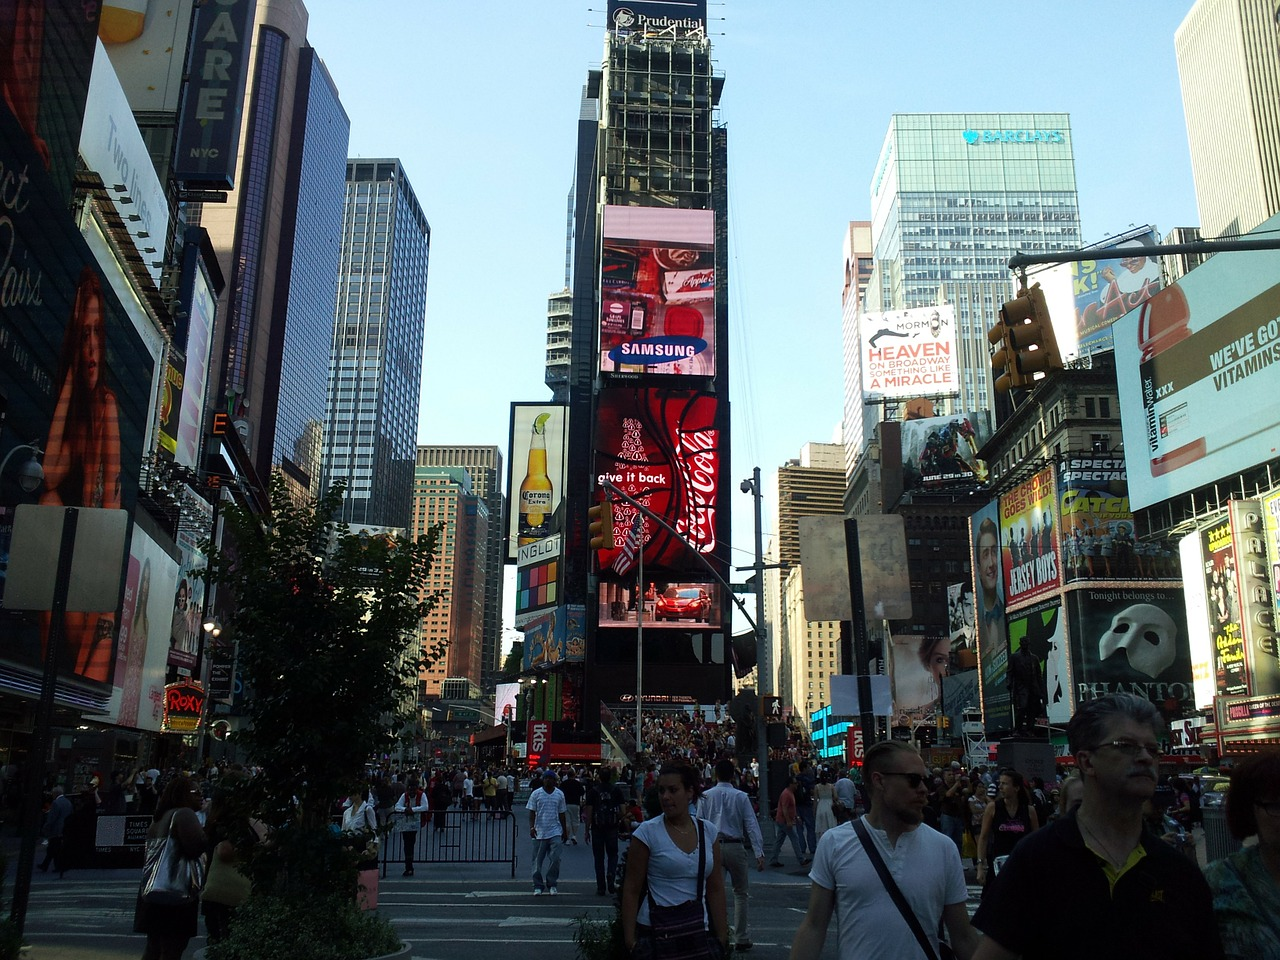 Warst du schonmal am Time Square